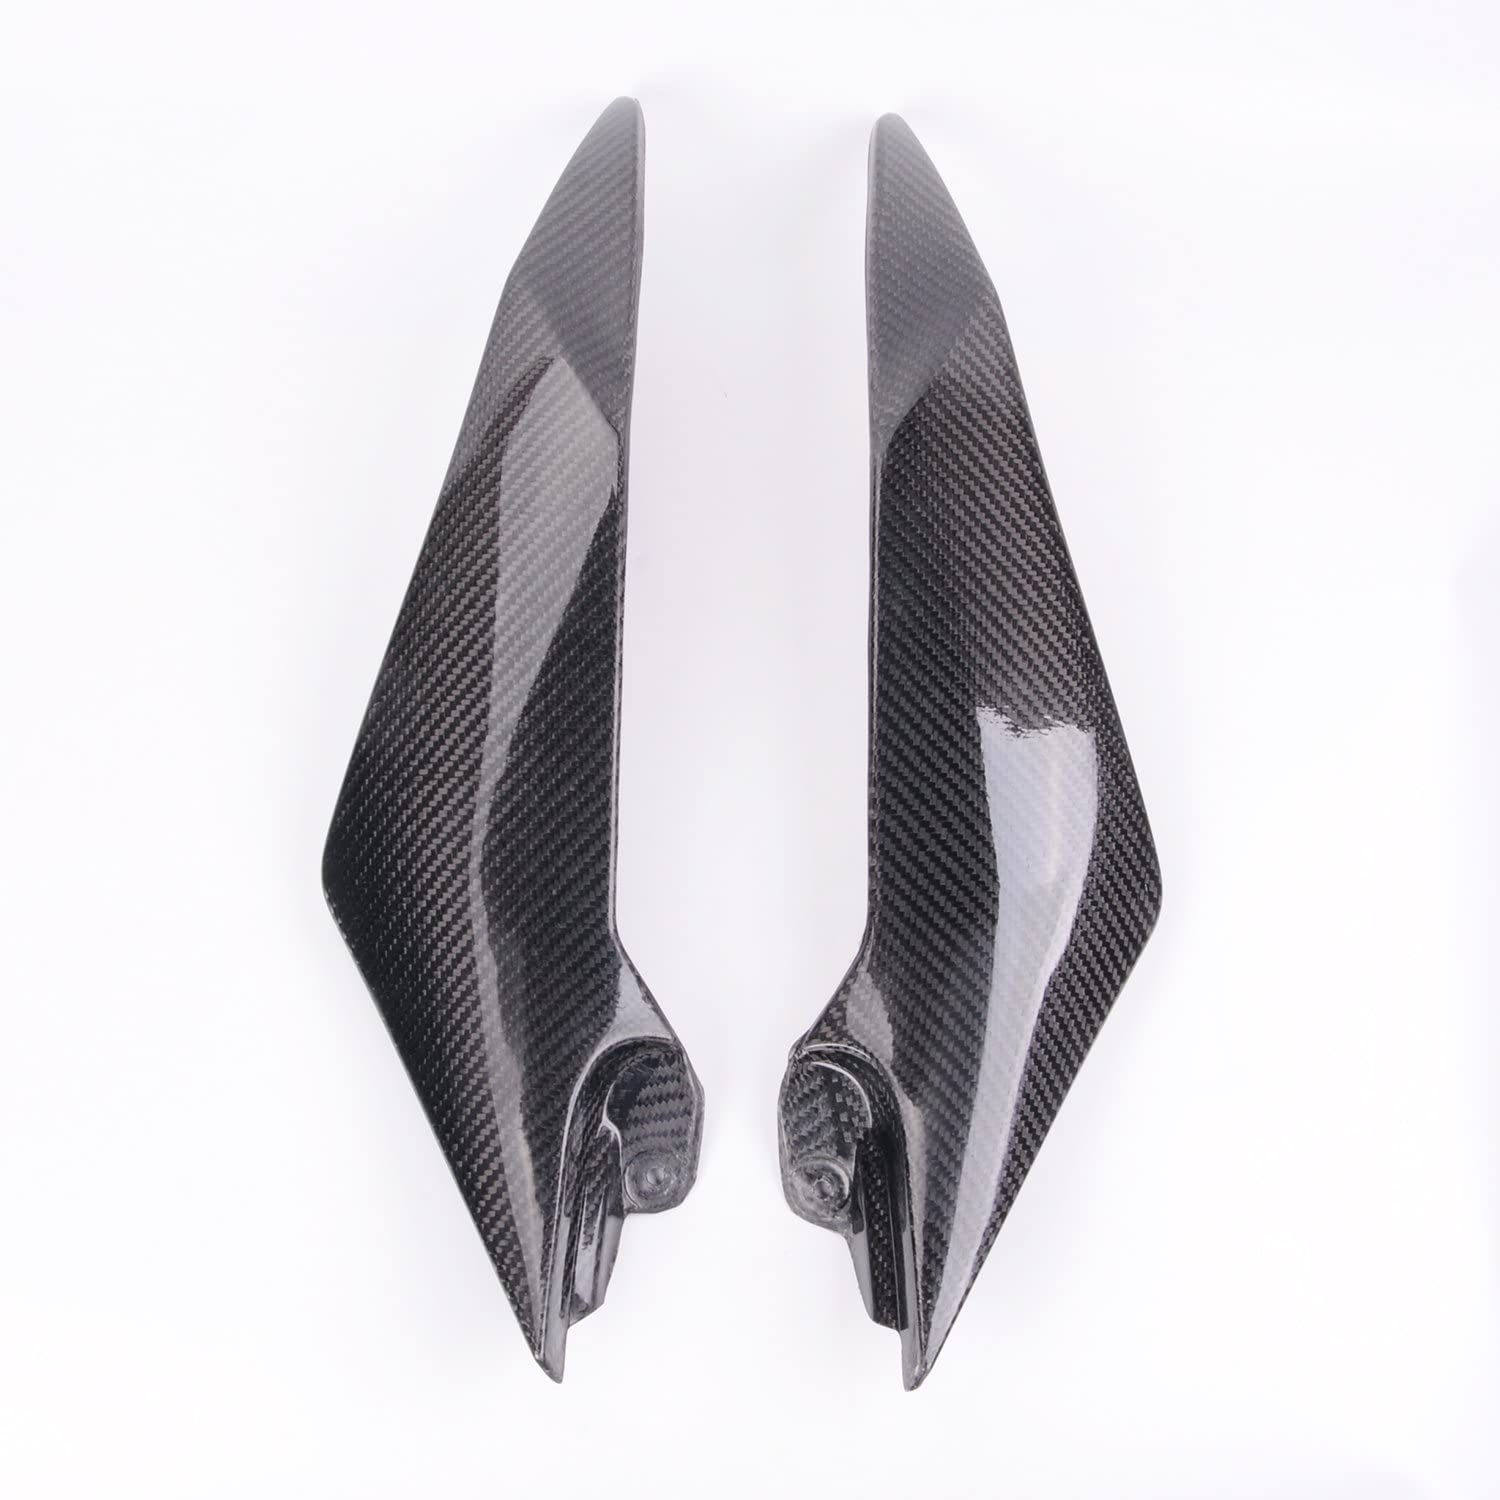 Gas Tank Side Cover Panel Fairing For Yamaha YZF R6 2008-2015 09 10 11 12 13 14